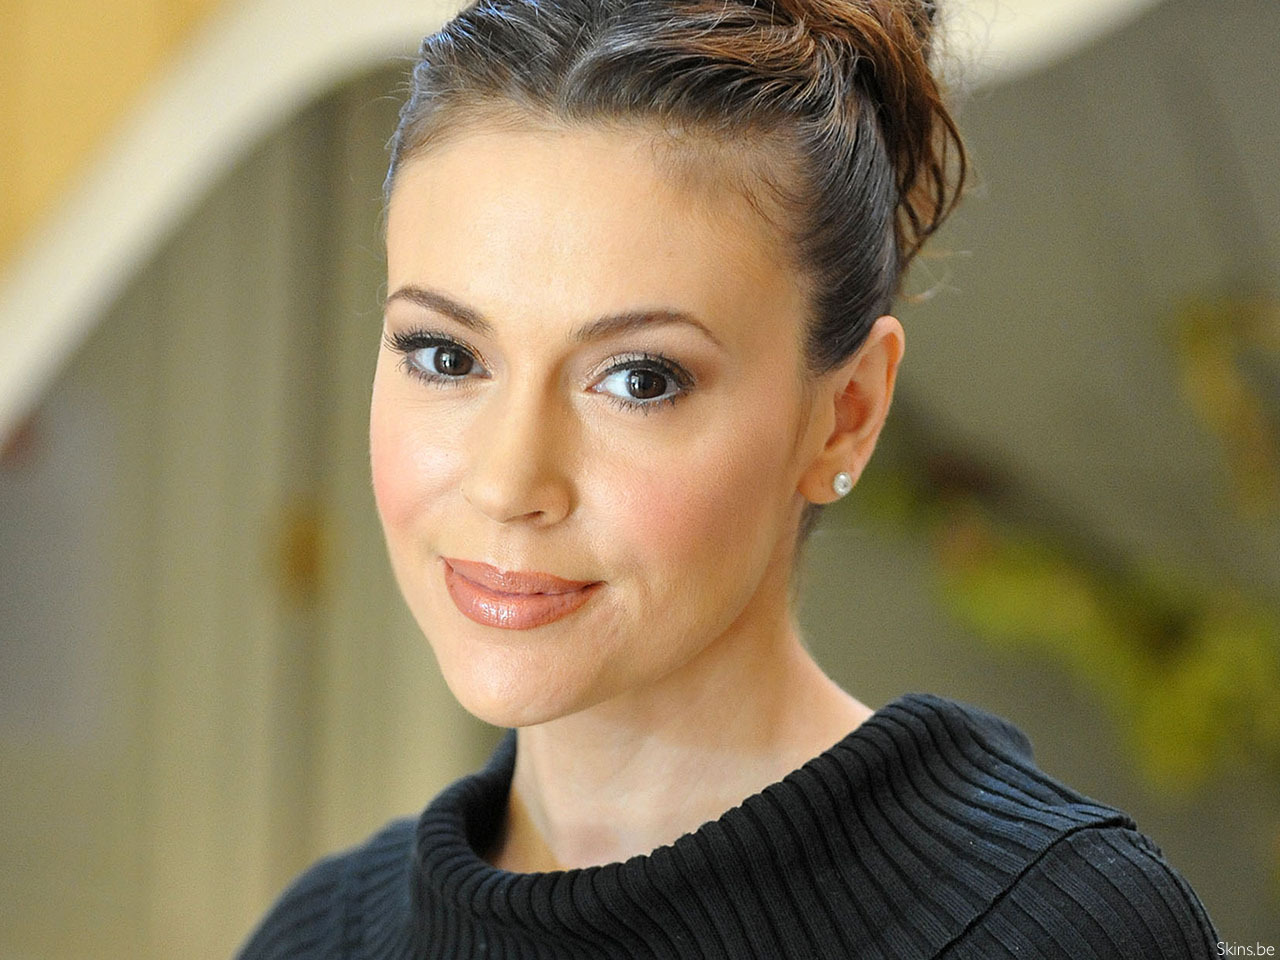 alyssa milano celebrities - photo #27